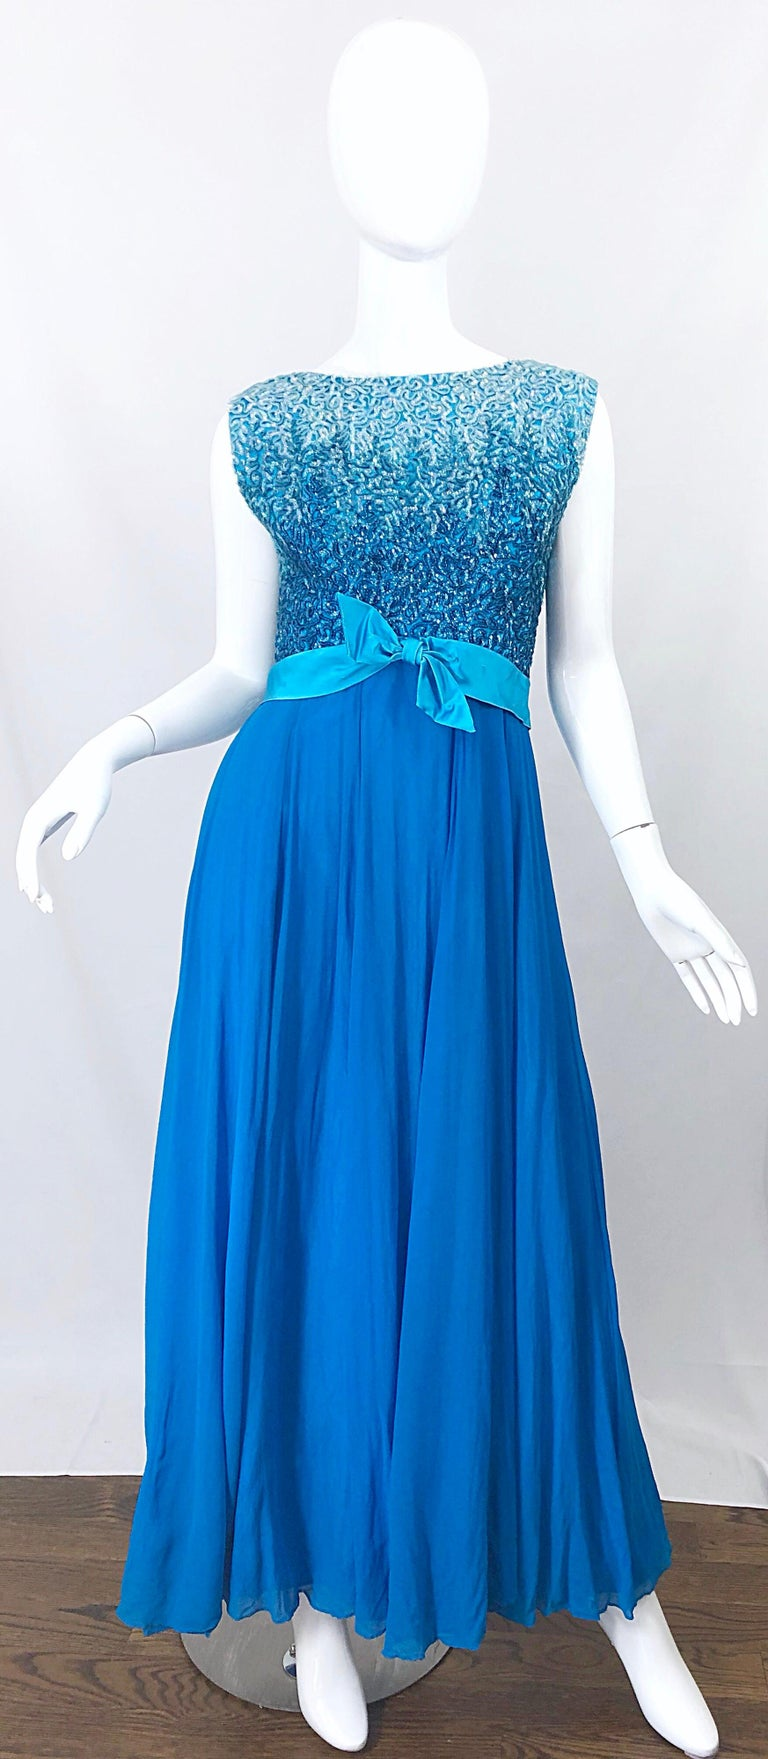 Stunning 1950s EMMA DOMB turquoise blue silk chiffon ombre sequined evening gown! Bodice features thousands of  hand-sewn sequins throughout the front and back. Full metal zipper up the back with hook-and-eye closure. Luxurious silk chiffon skirt